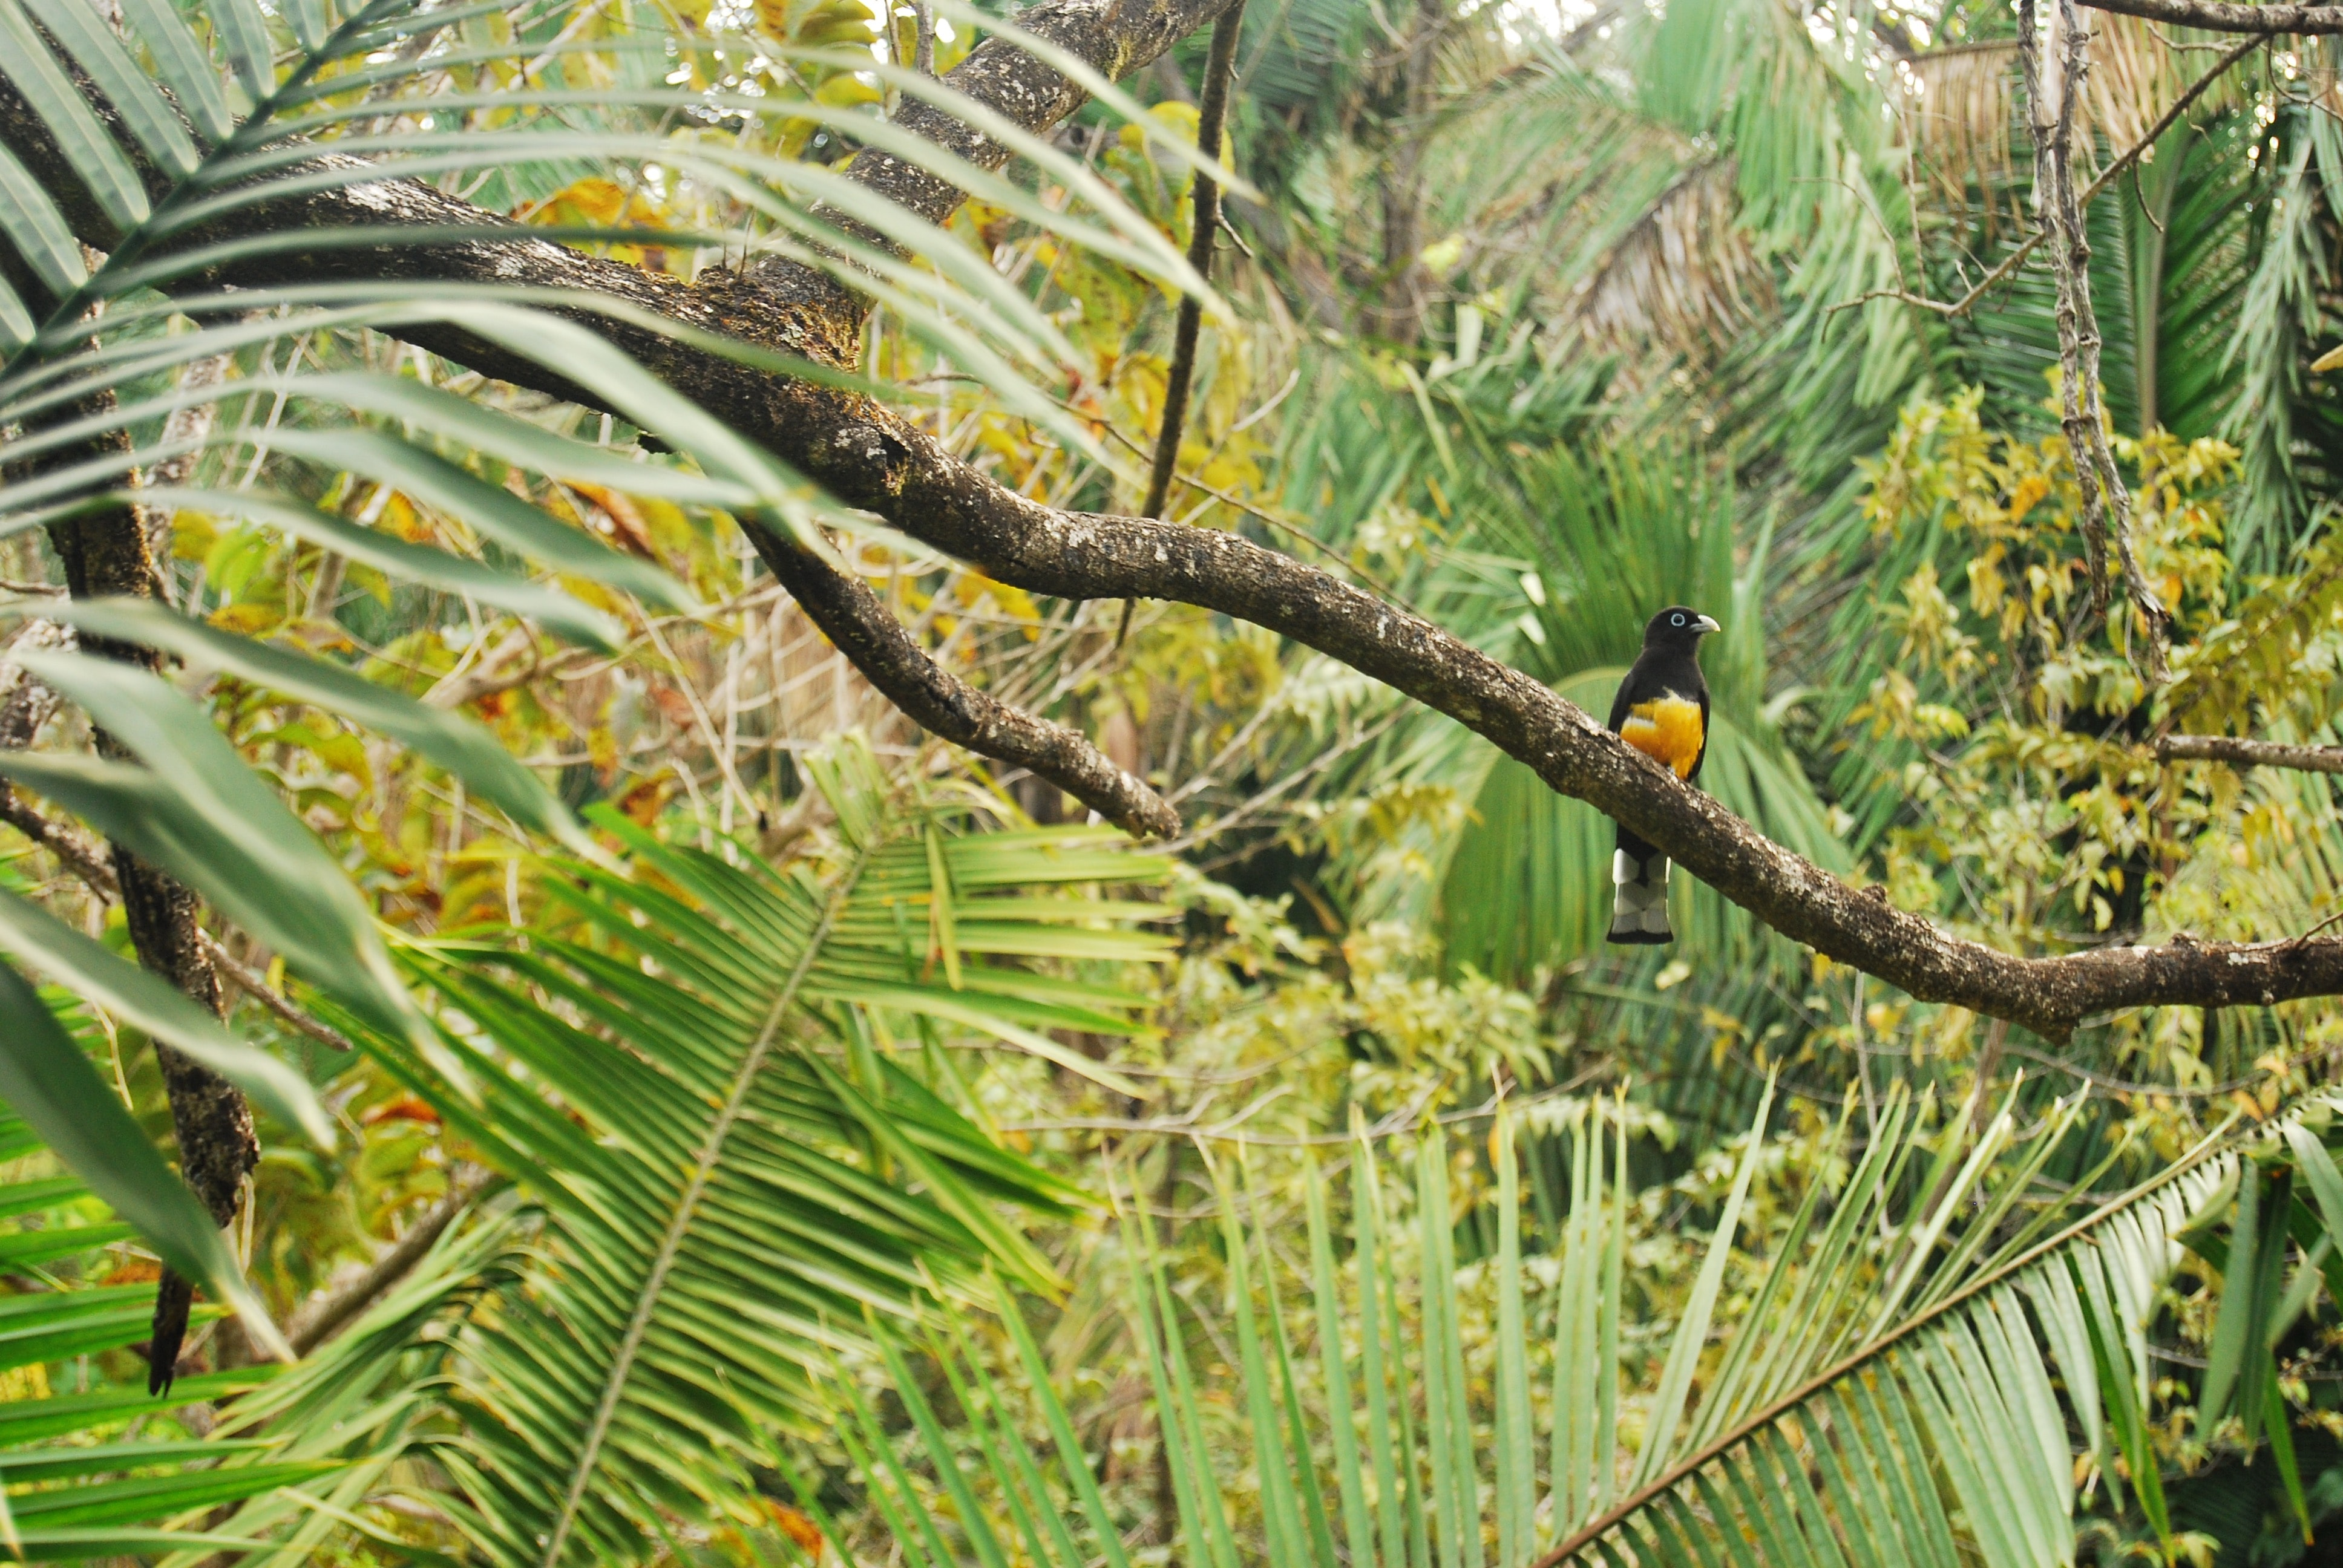 A yellow and black bird perched on a branch in a tropical forest